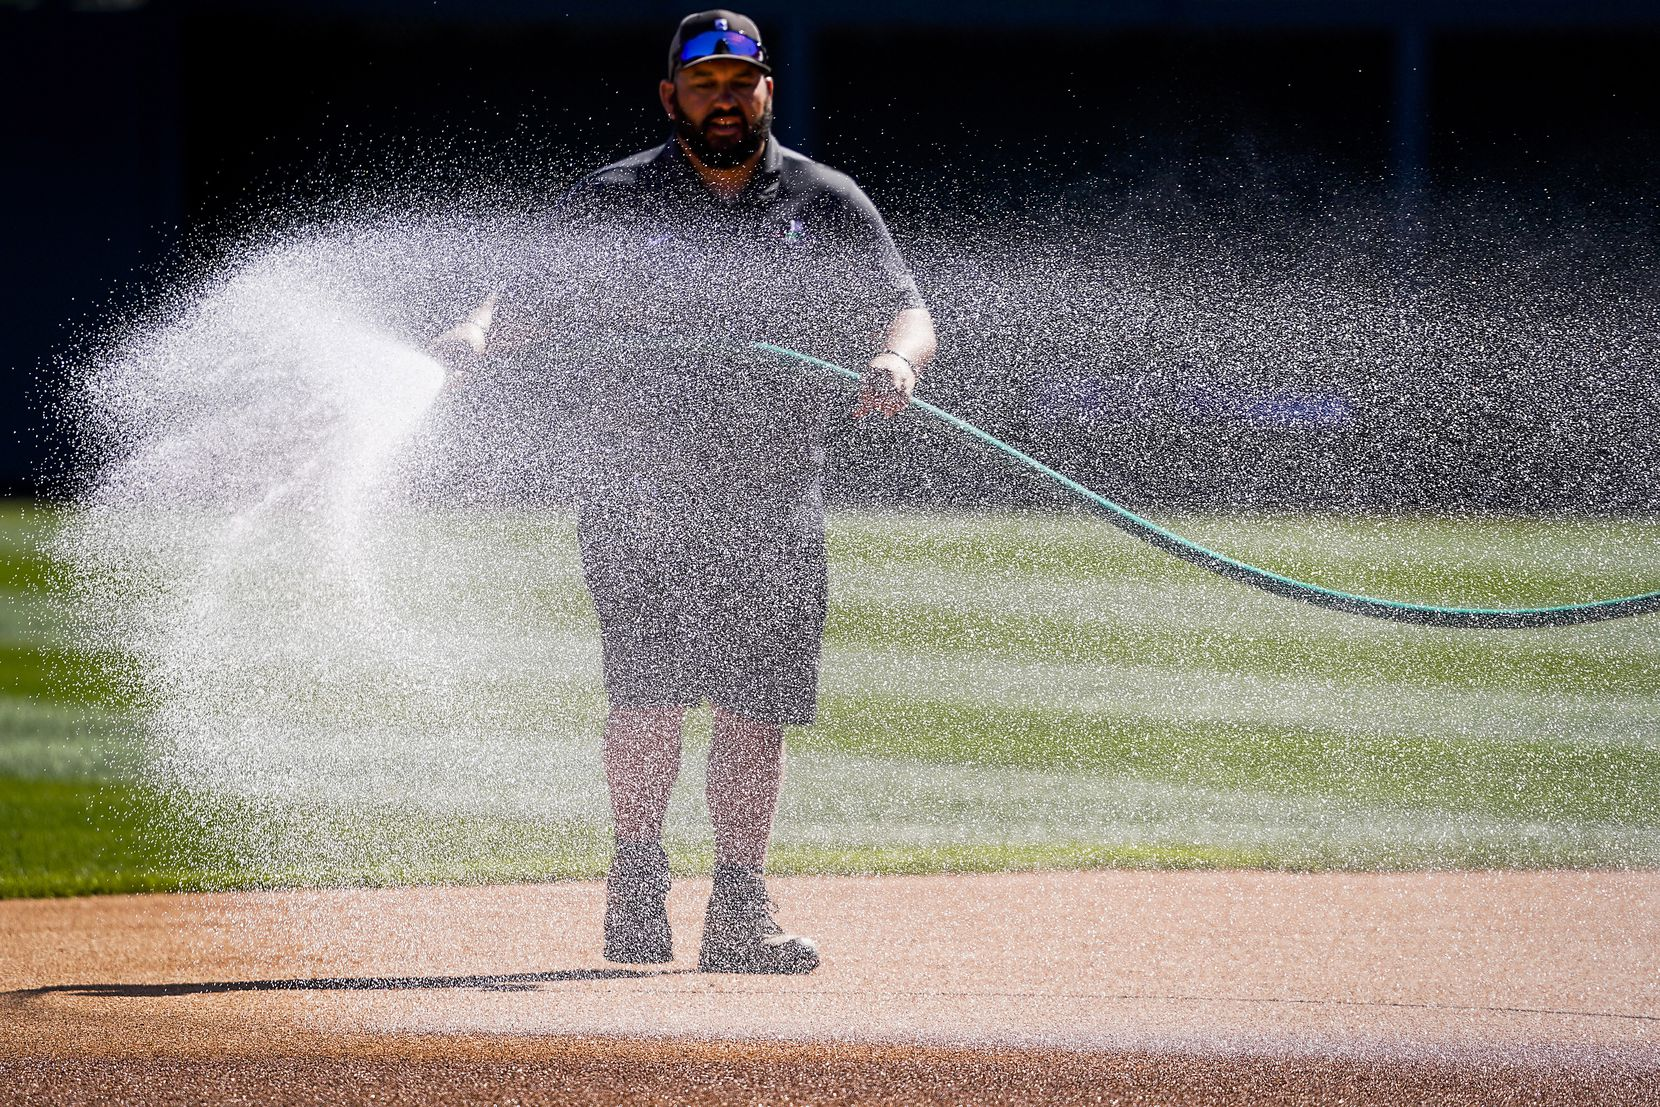 Groundkeepers prepare the field before a spring training game between the Texas Rangers and the Colorado Rockies at Salt River Fields at Talking Stick on Wednesday, Feb. 26, 2020, in Scottsdale, Ariz.